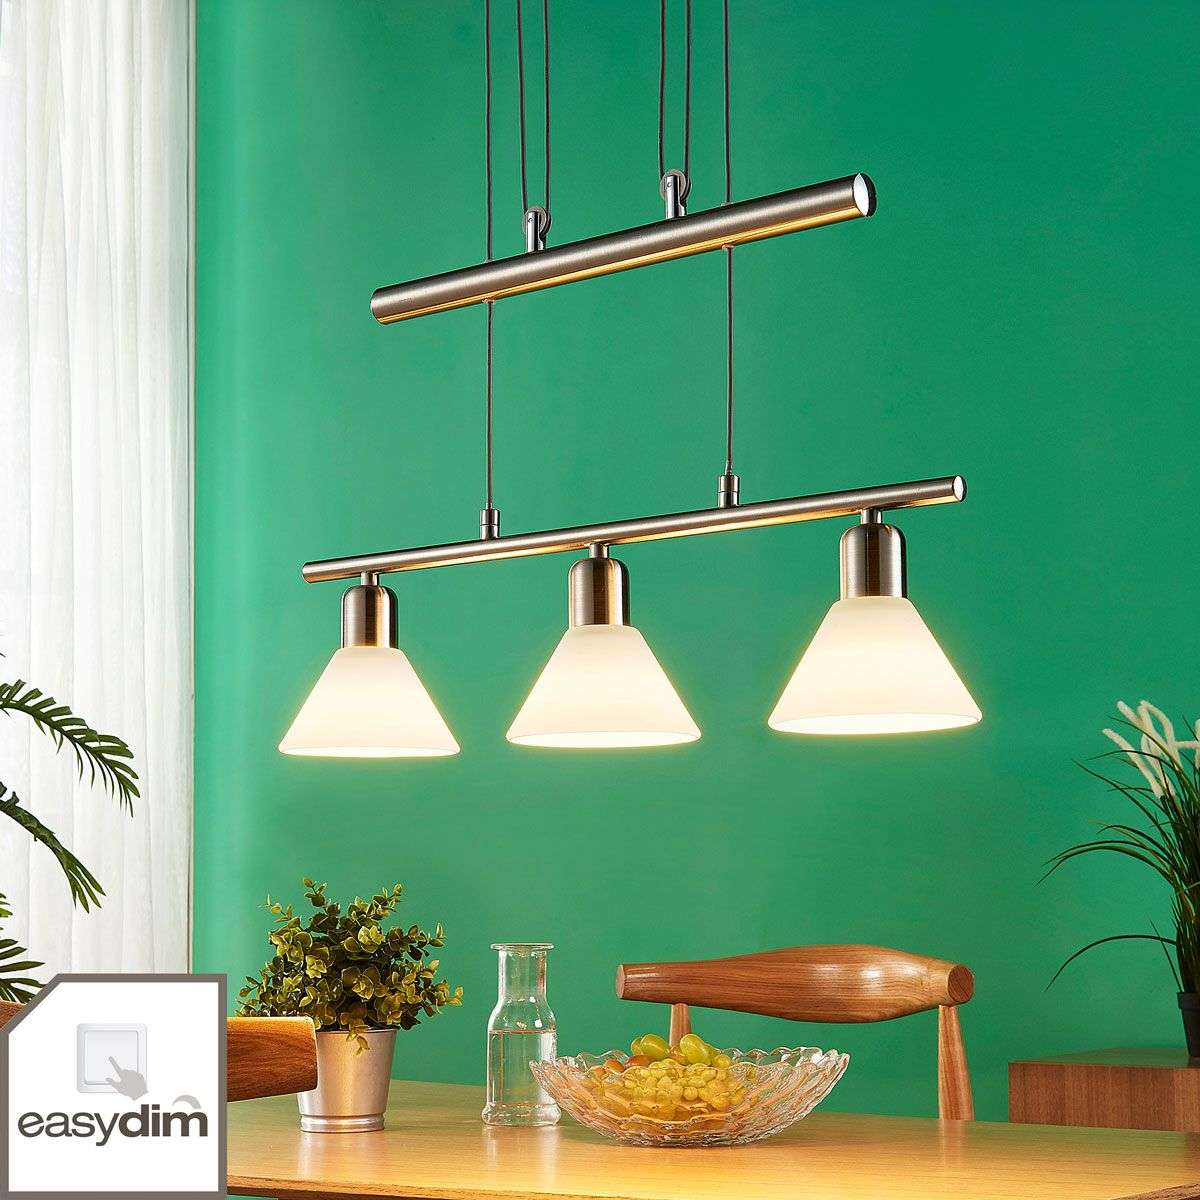 Easydim Dining Table Pendant Light Eleasa With Led